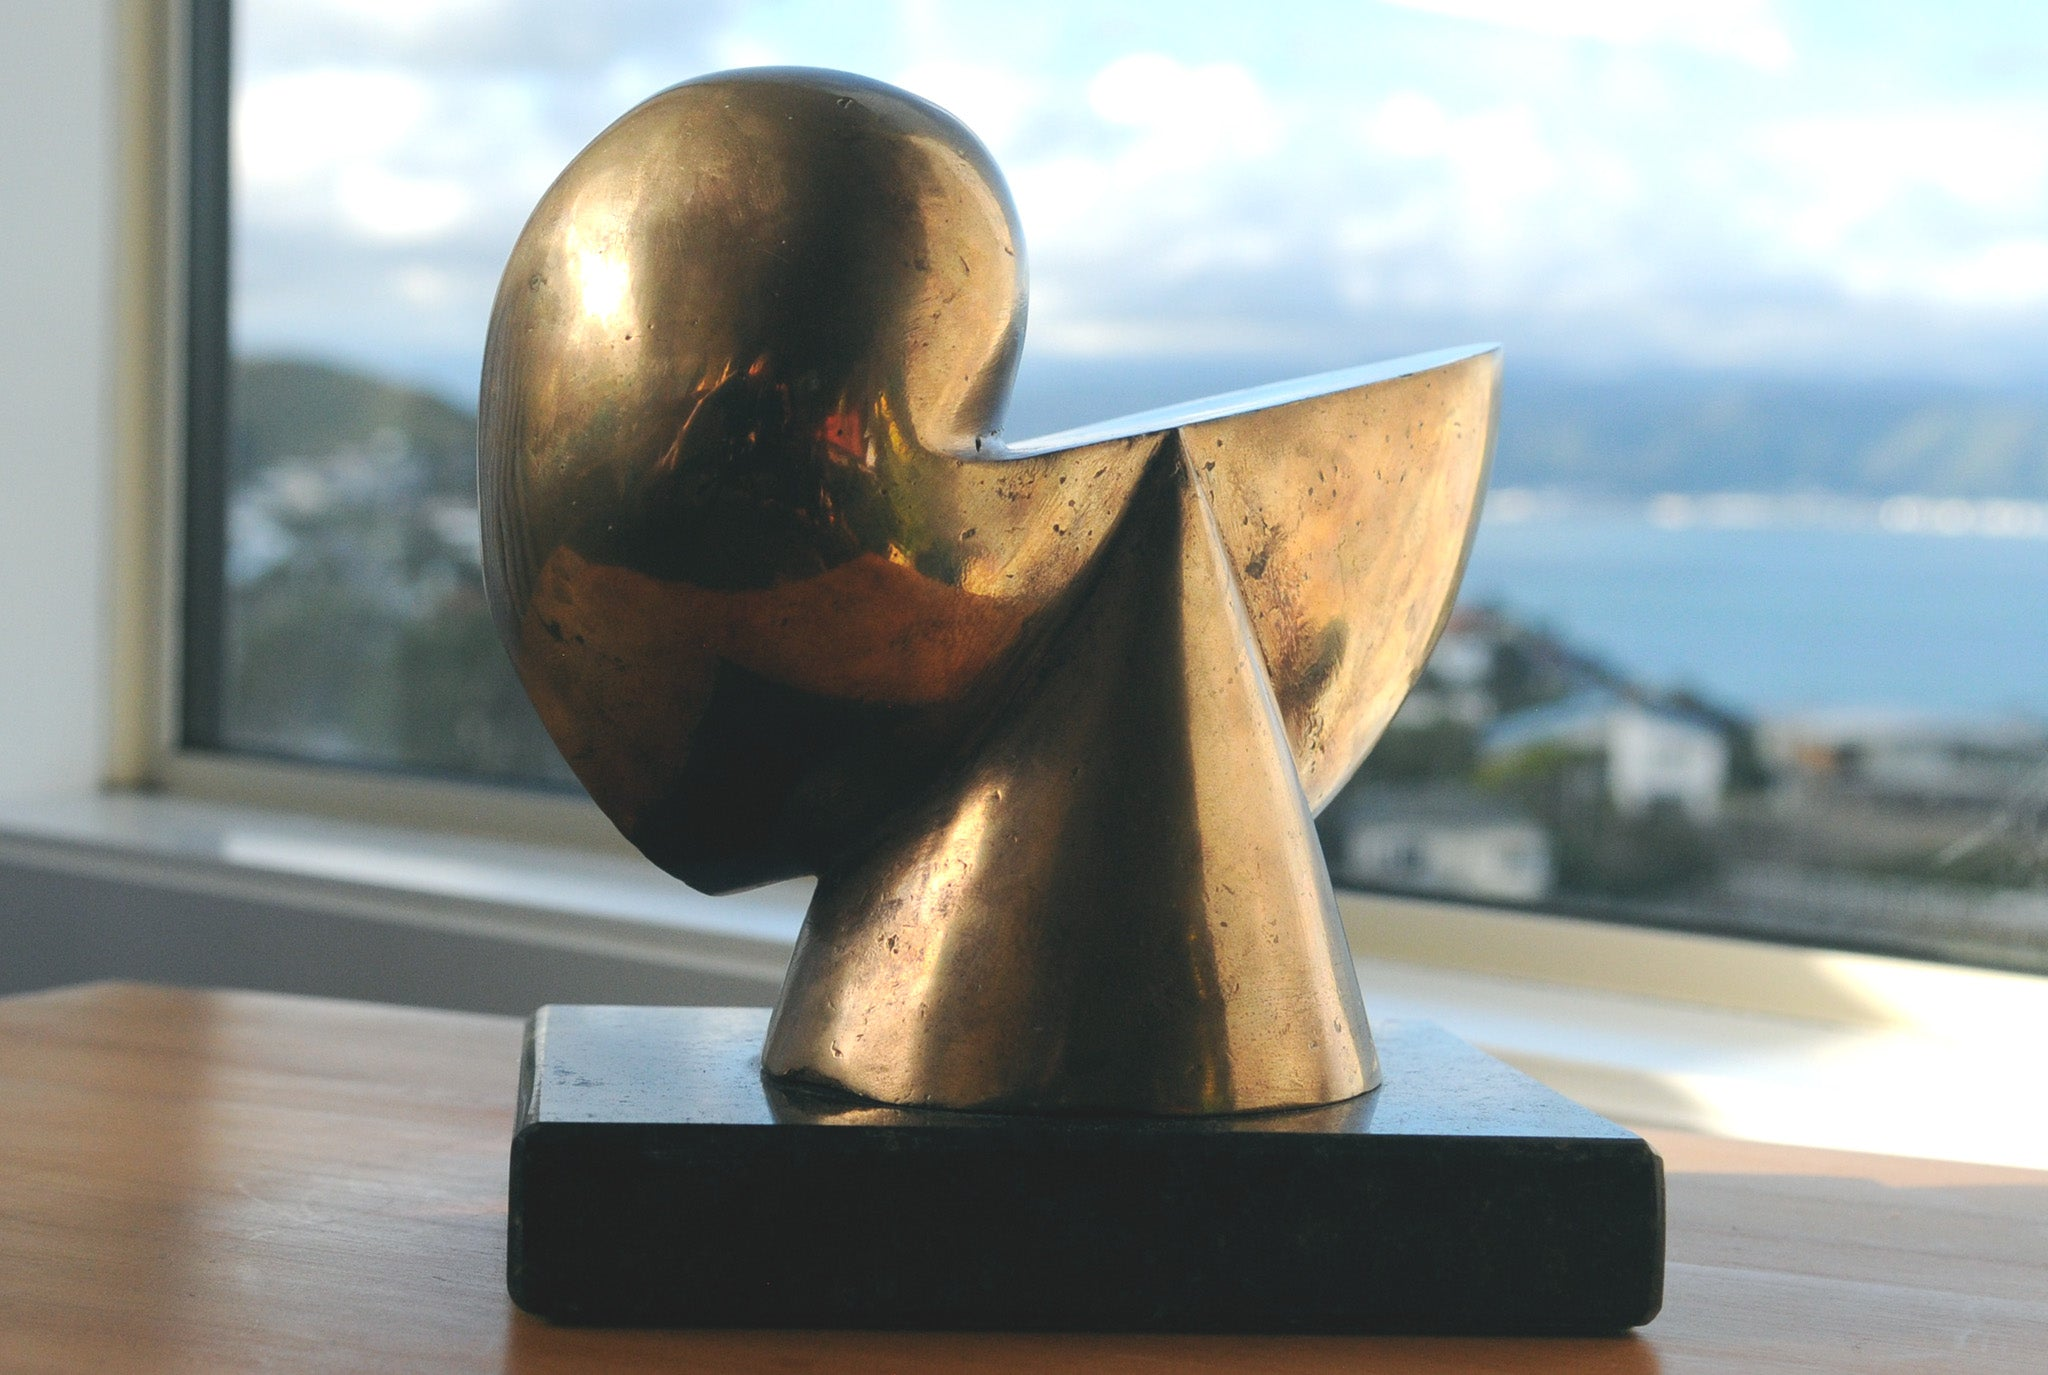 Abstract bronze sculpture by Stephen Williams.